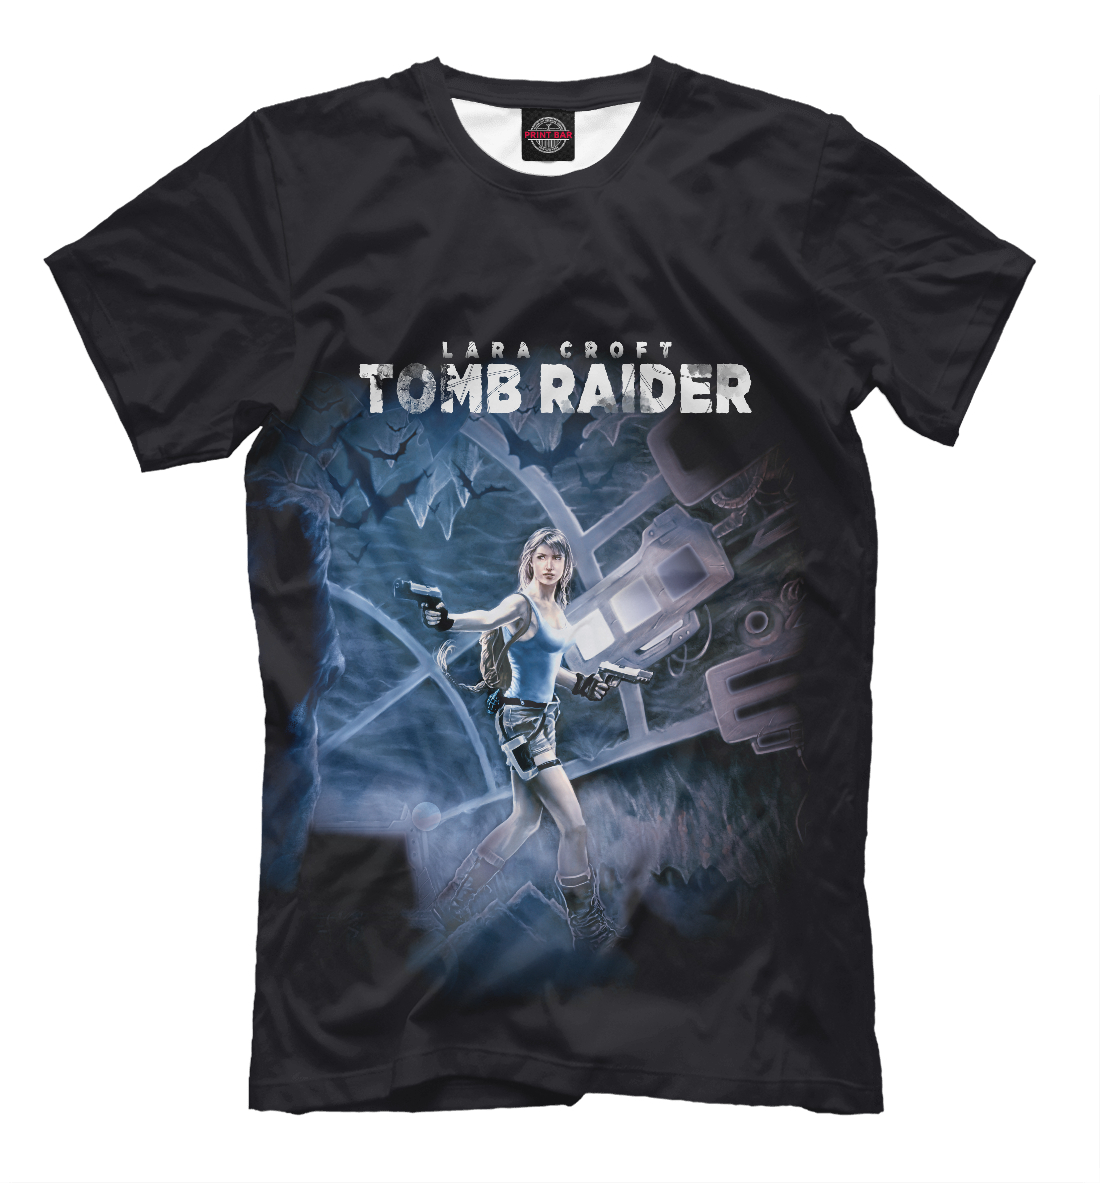 Купить Tomb Raider 2018, Printbar, Футболки, TBR-700533-fut-2